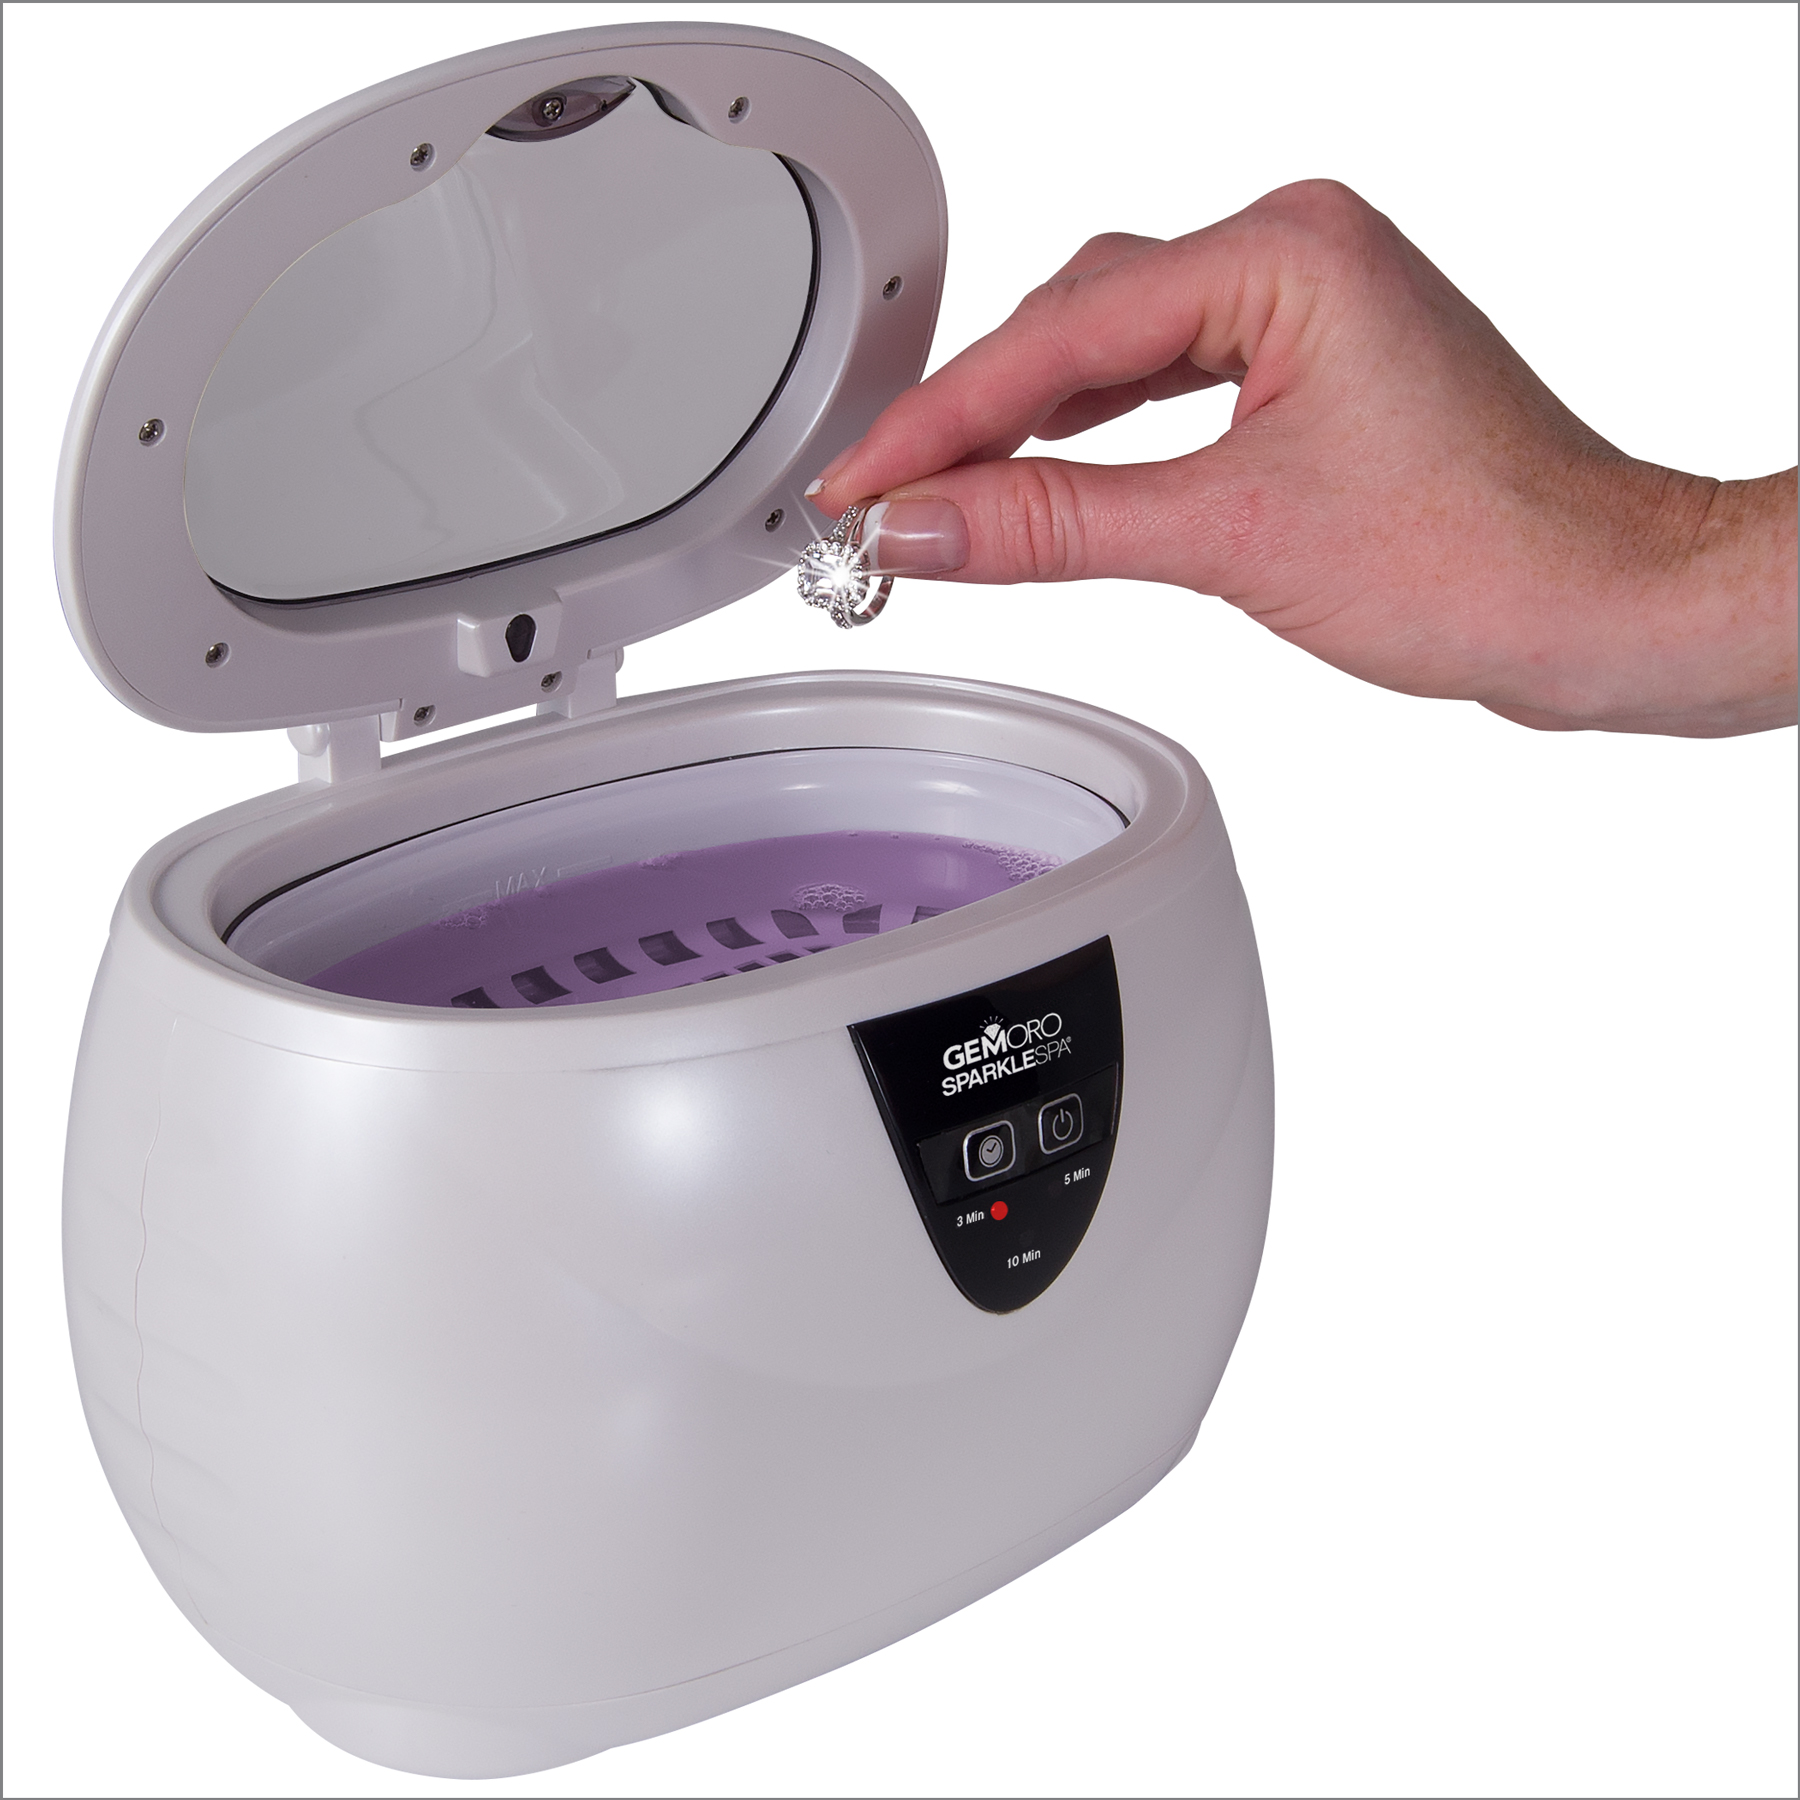 A Sparkle Spa jewelry cleaning unit